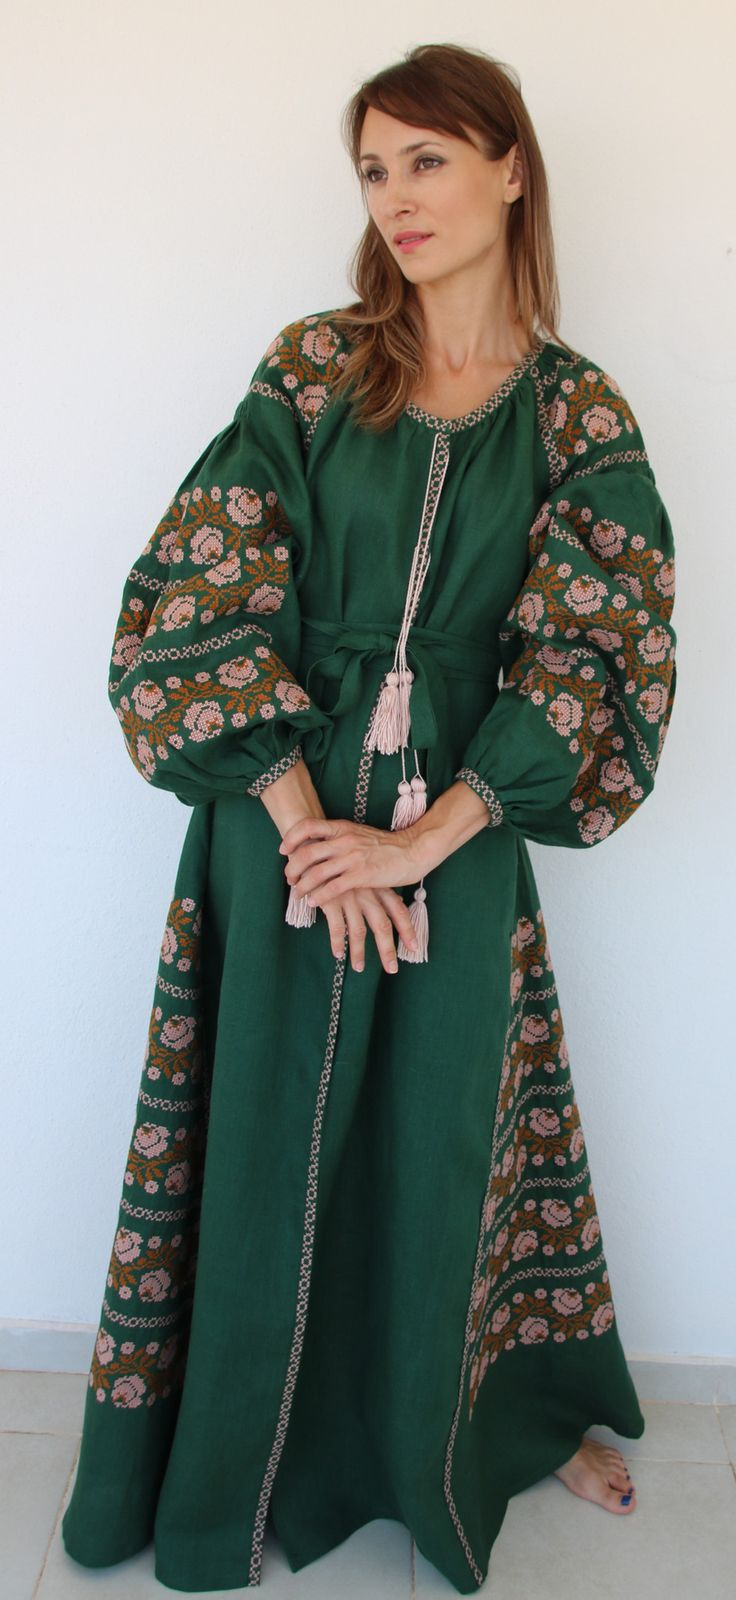 Fanm Mon Dark Green Linen Copper Blush Vyshyvanka MAXI Dress Copper Blush Embroidery. Sizes - XS-XXL MX042-01